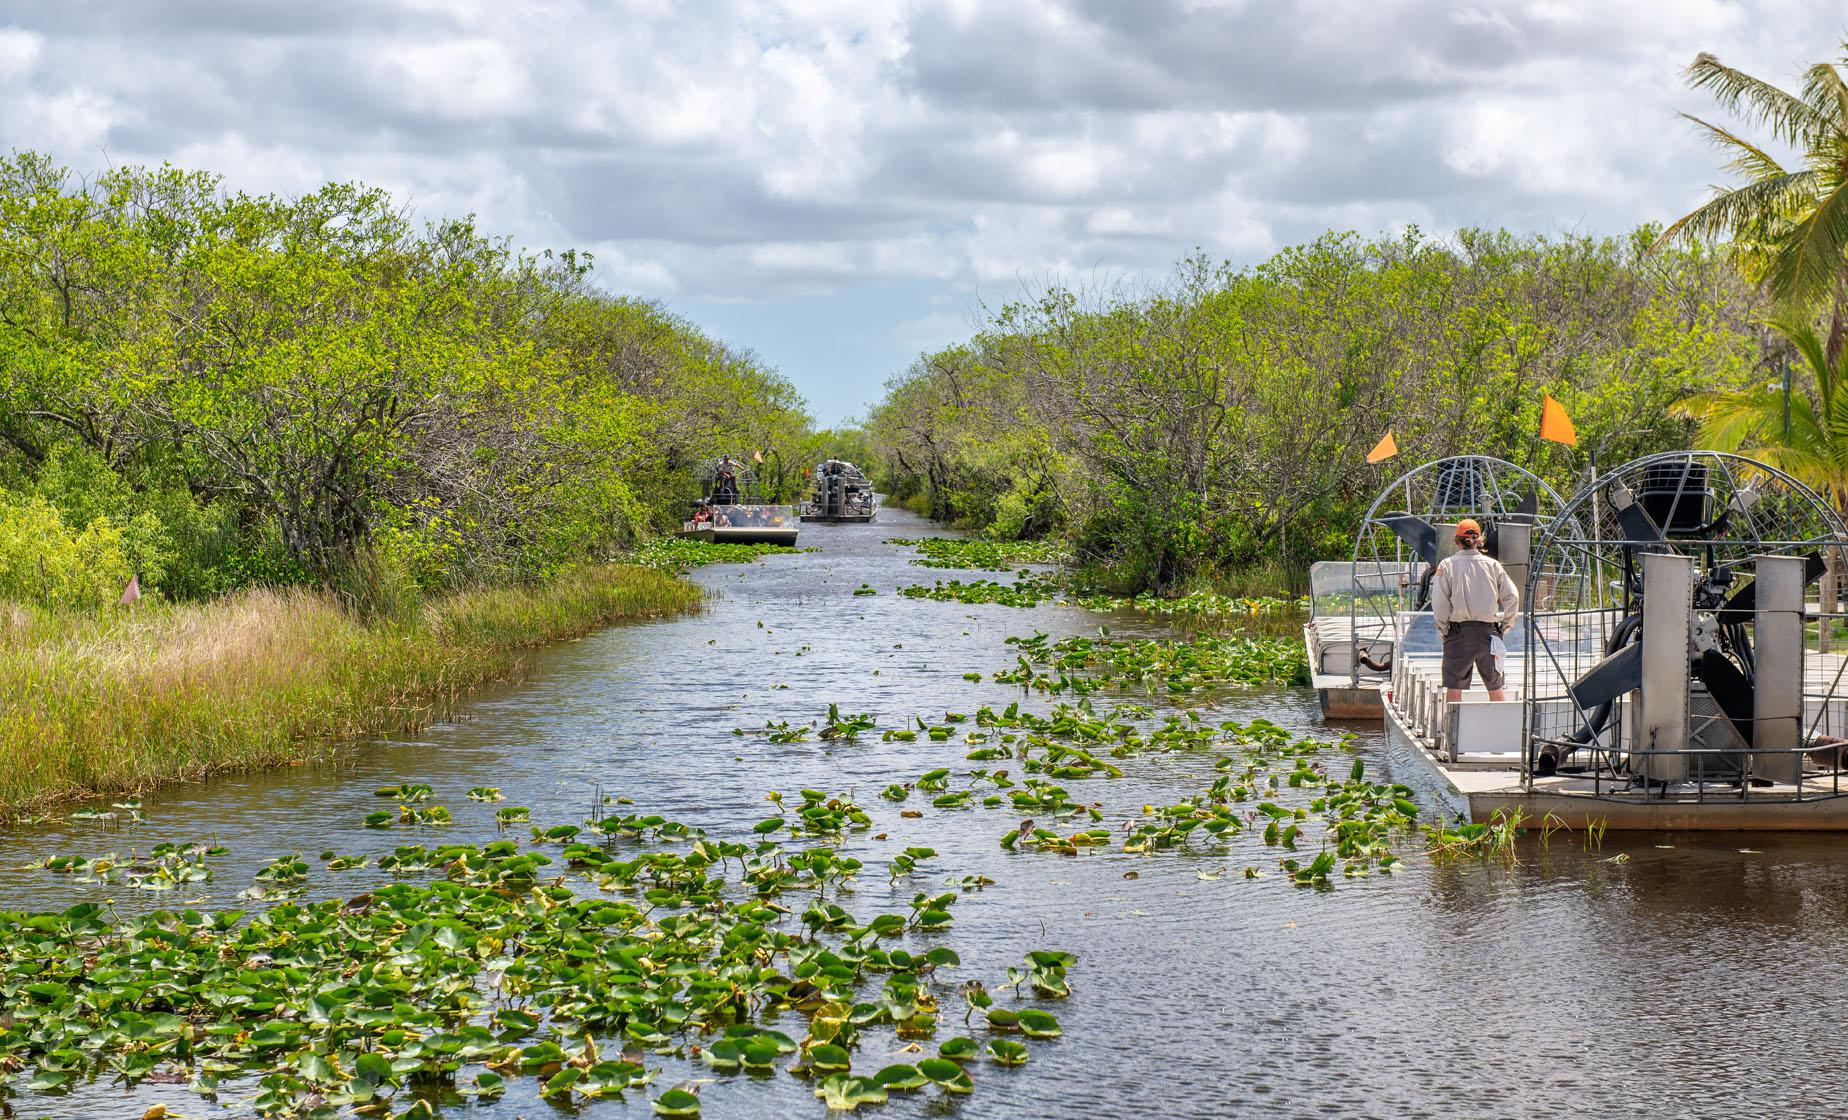 Miami City Sightseeing and Everglades Airboat Tour